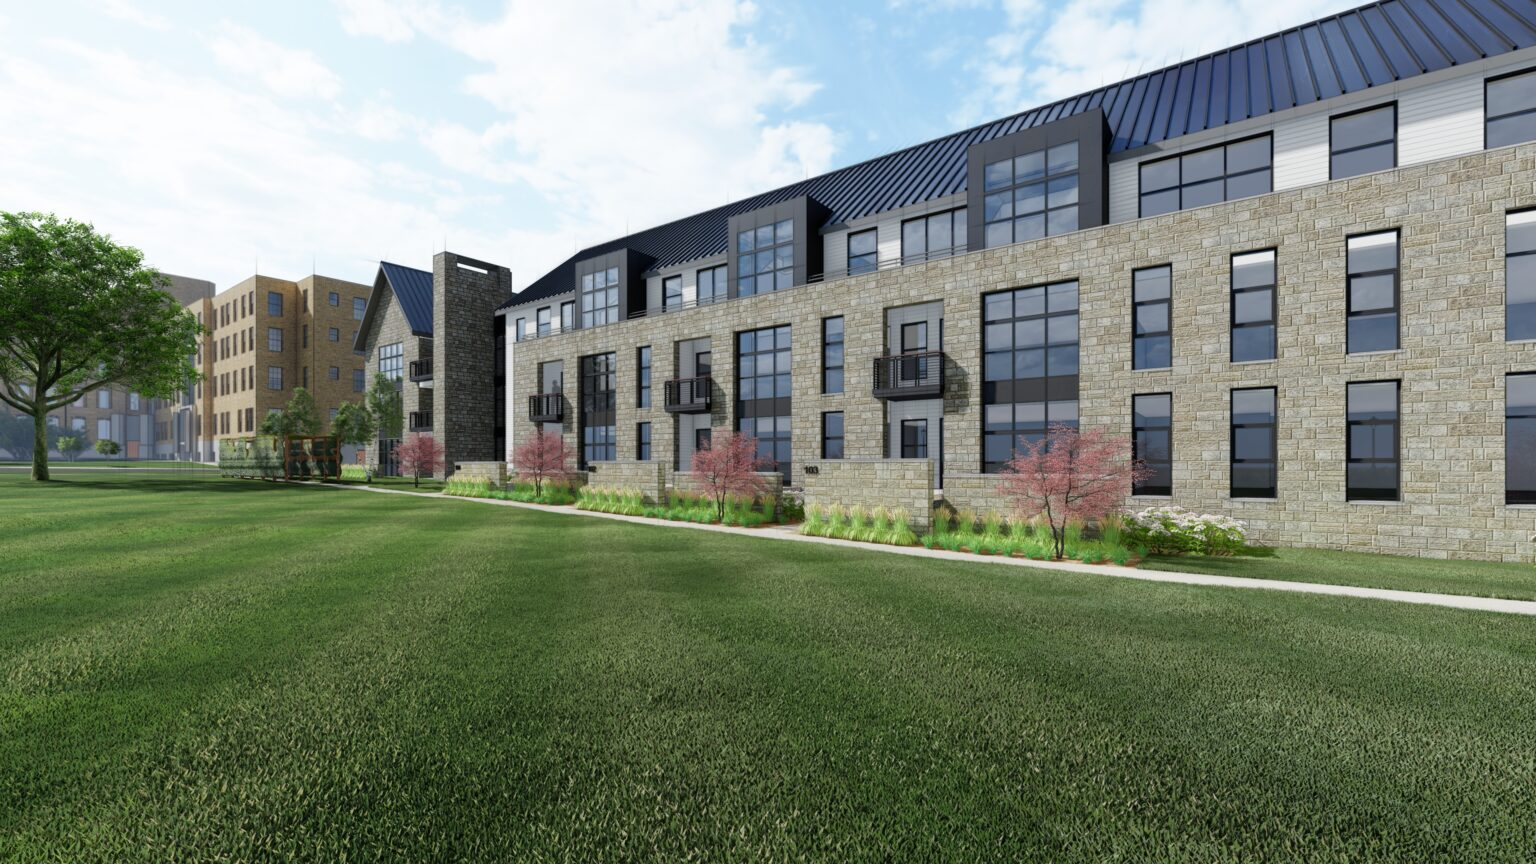 Mandel to develop apartments at Sisters of Notre Dame Elm Grove campus